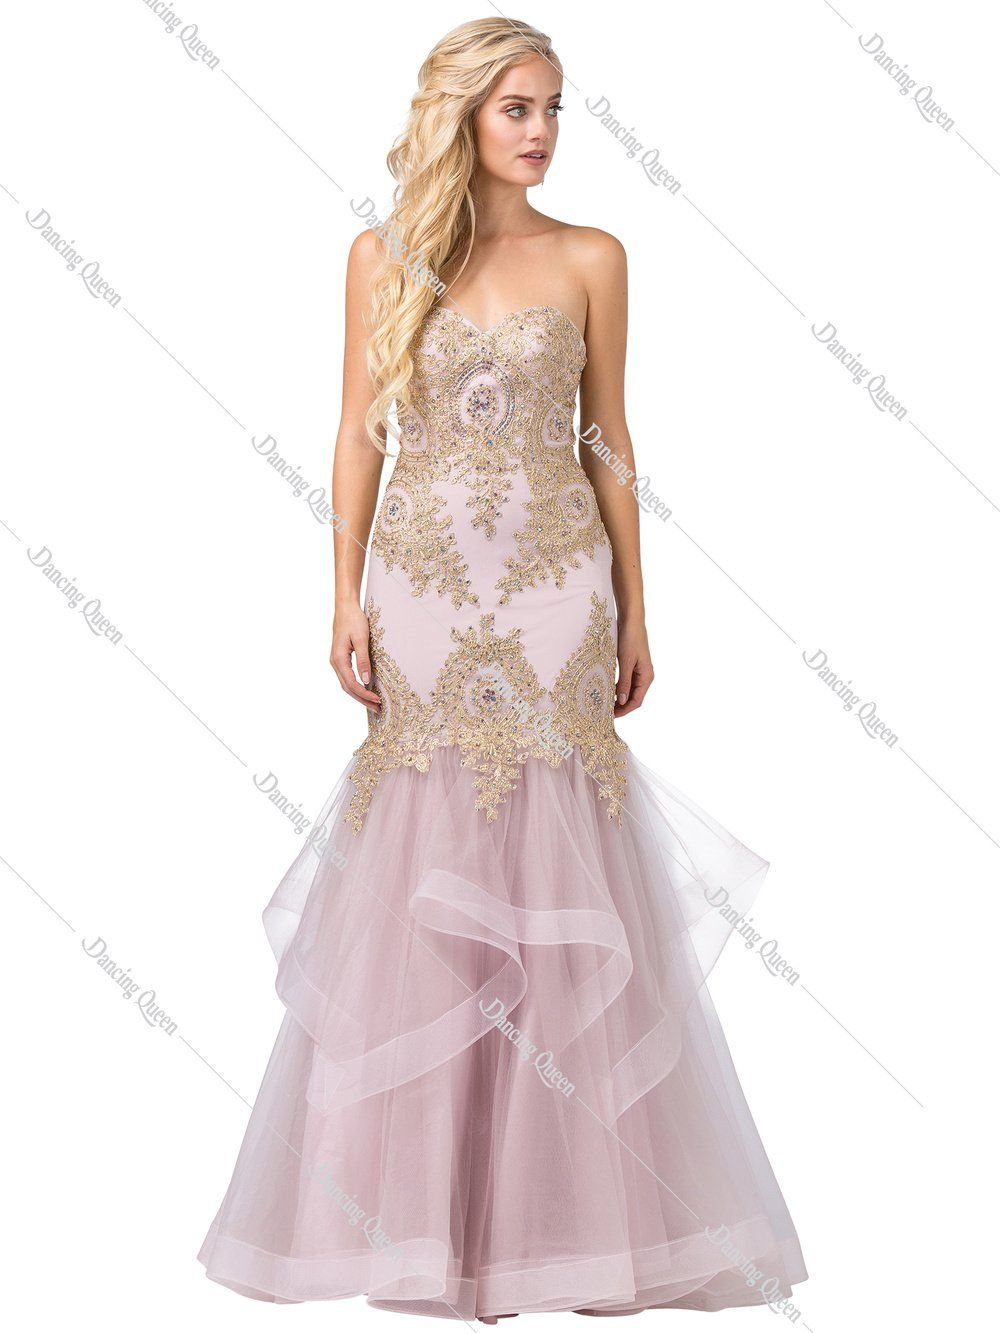 fd878f1b6f DQ 2449 - Strapless Gold Sequin Embellished Fit   Flare with Corset ...